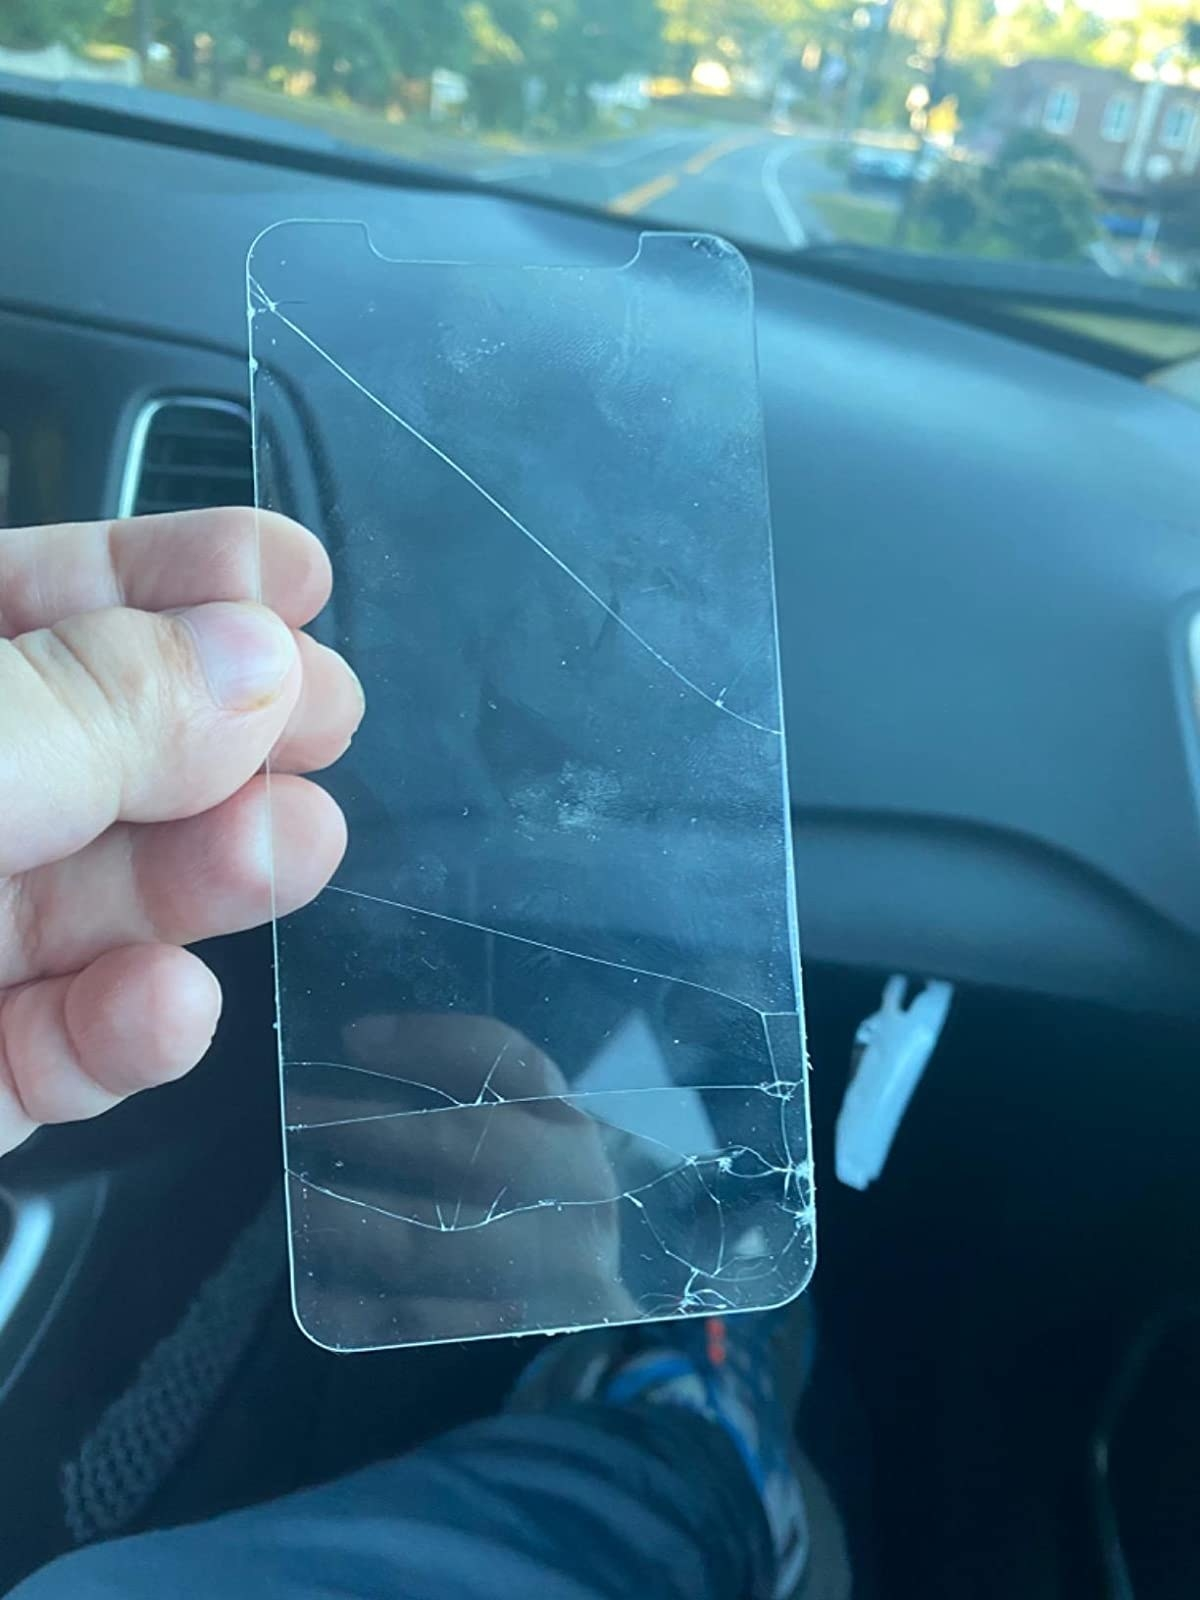 a hand holding a cracked screen protector